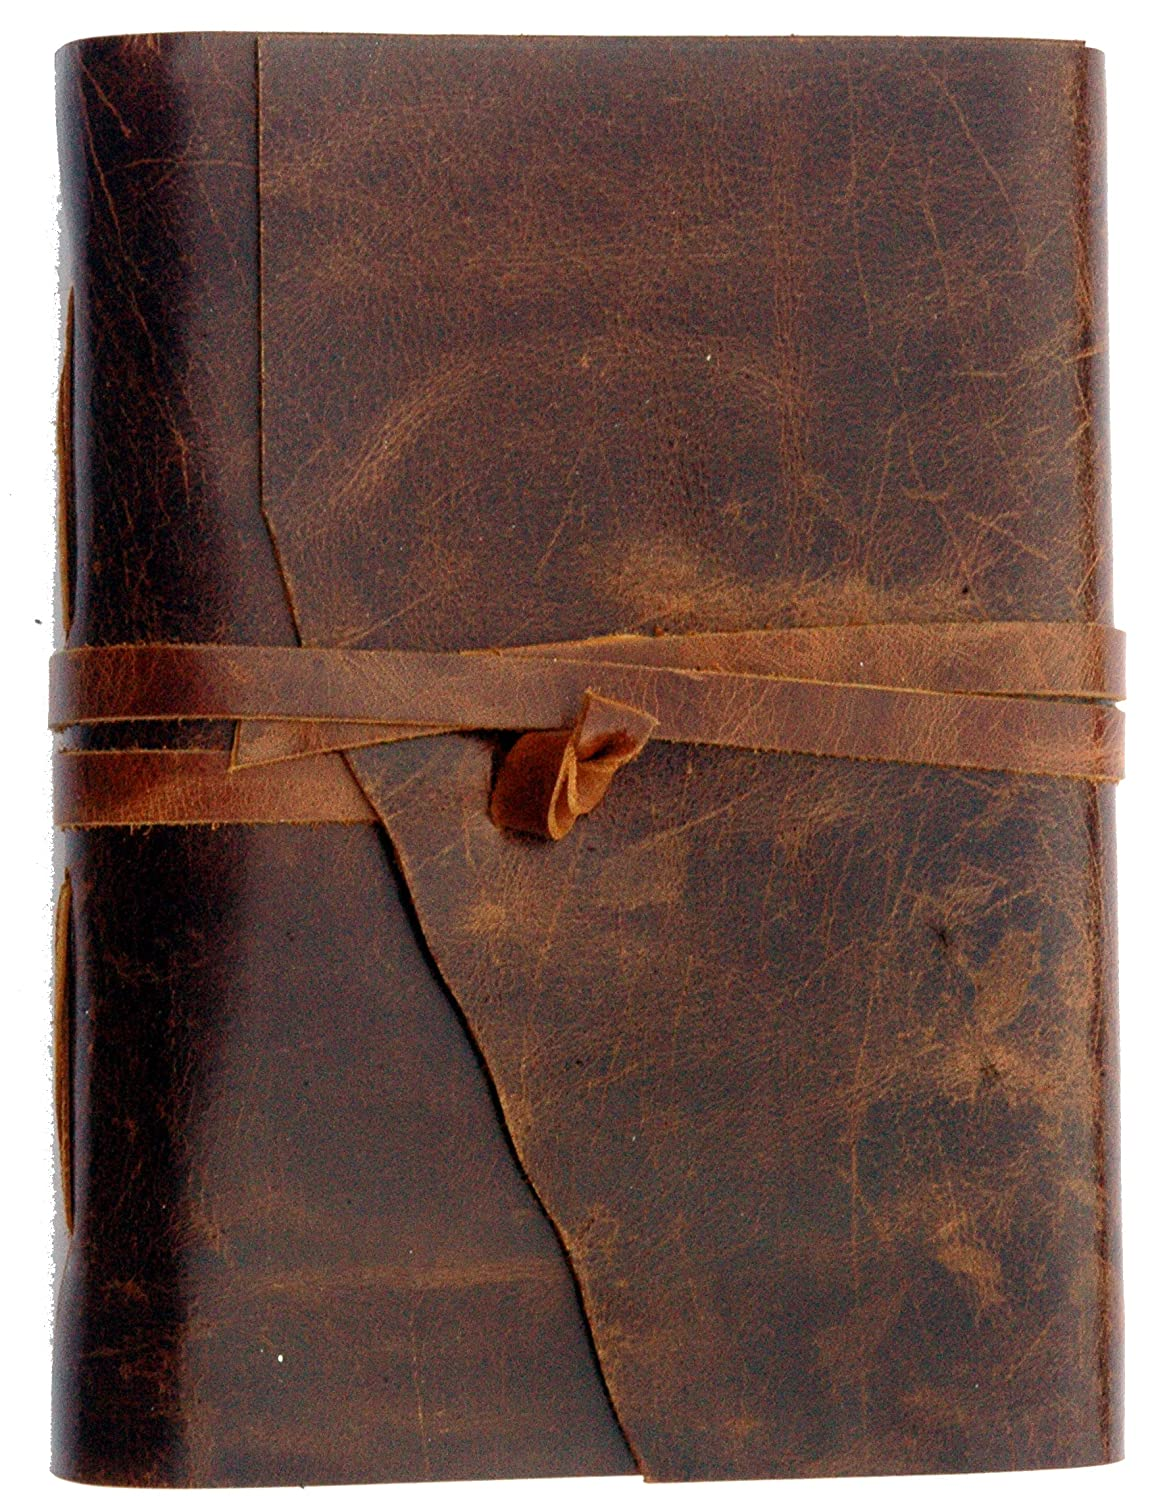 Scuff - Resistant Distressed Drum Dyed Premium Supple Leather With Soft Luster : Stoke Your Wanderlust - Leather Journal, Travel Diary, Unlined Paper Sketchbook